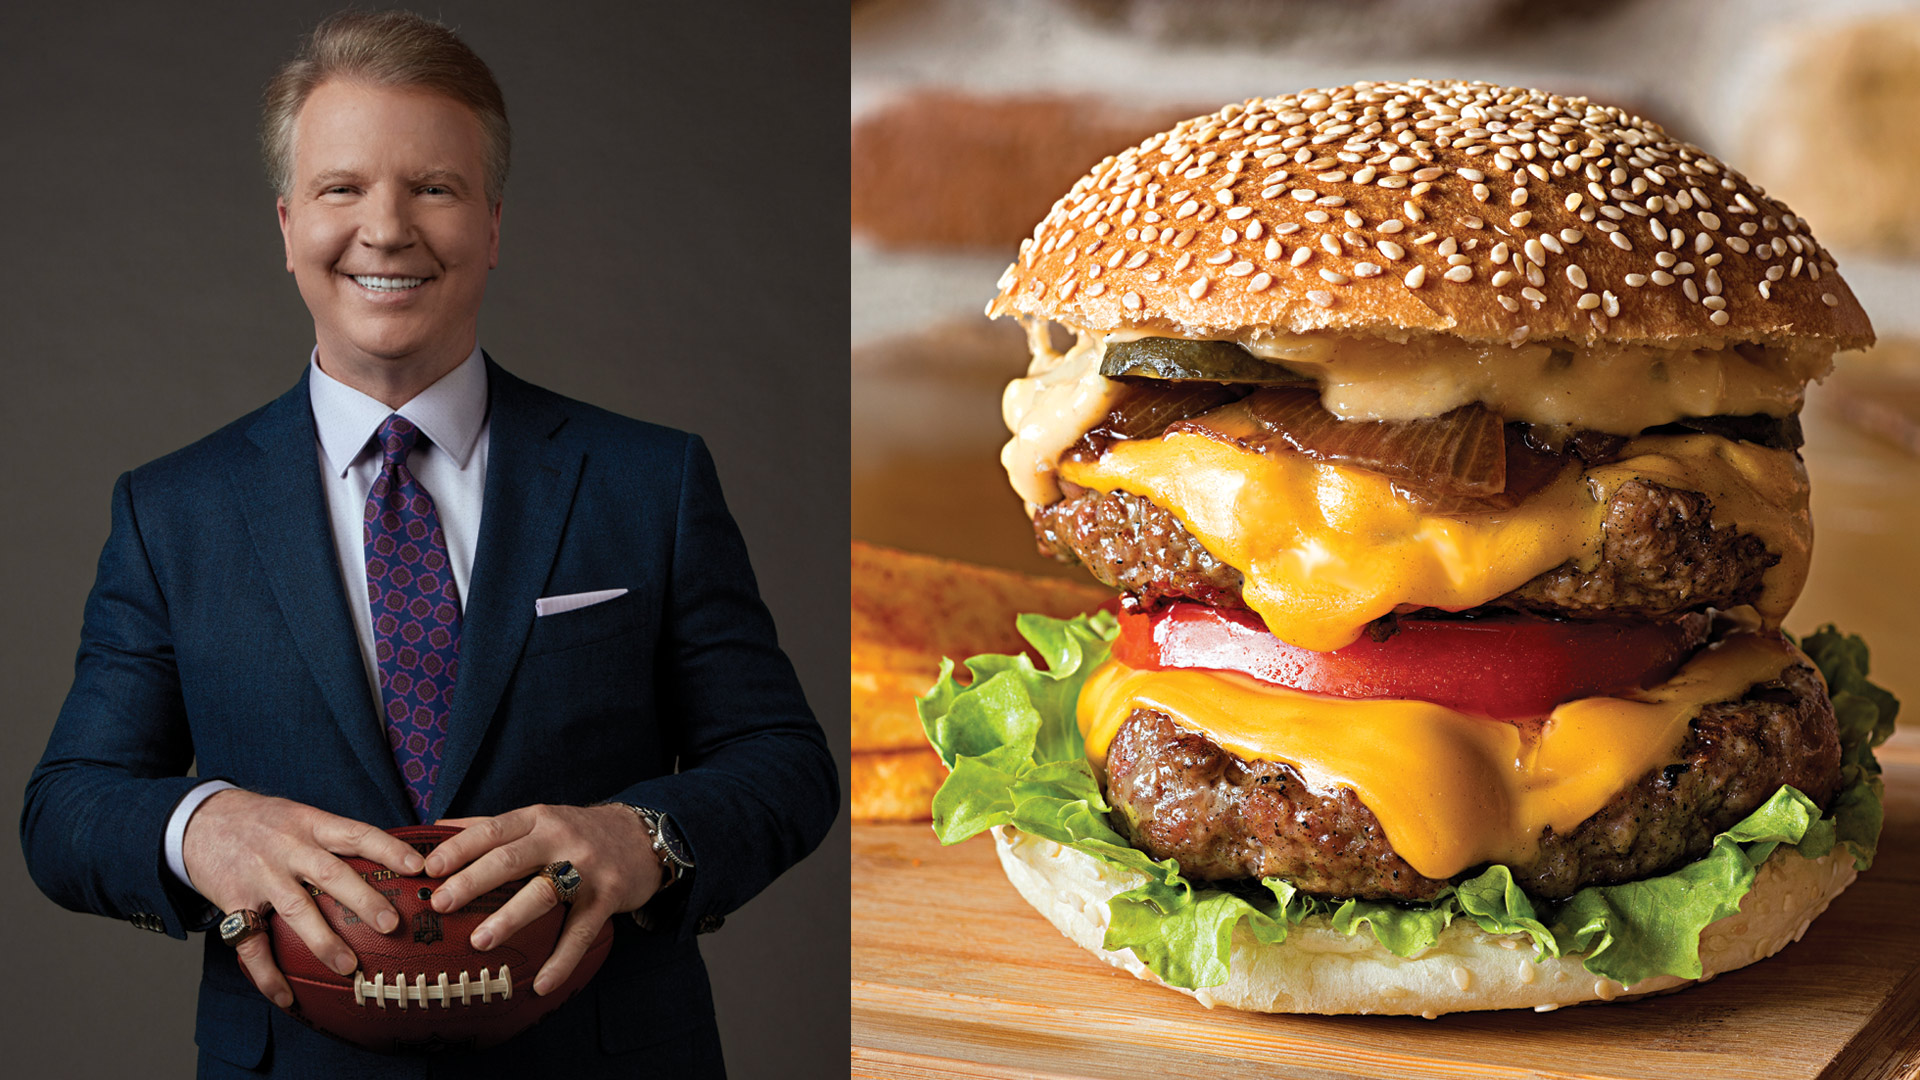 Phil Simms says burgers are best.